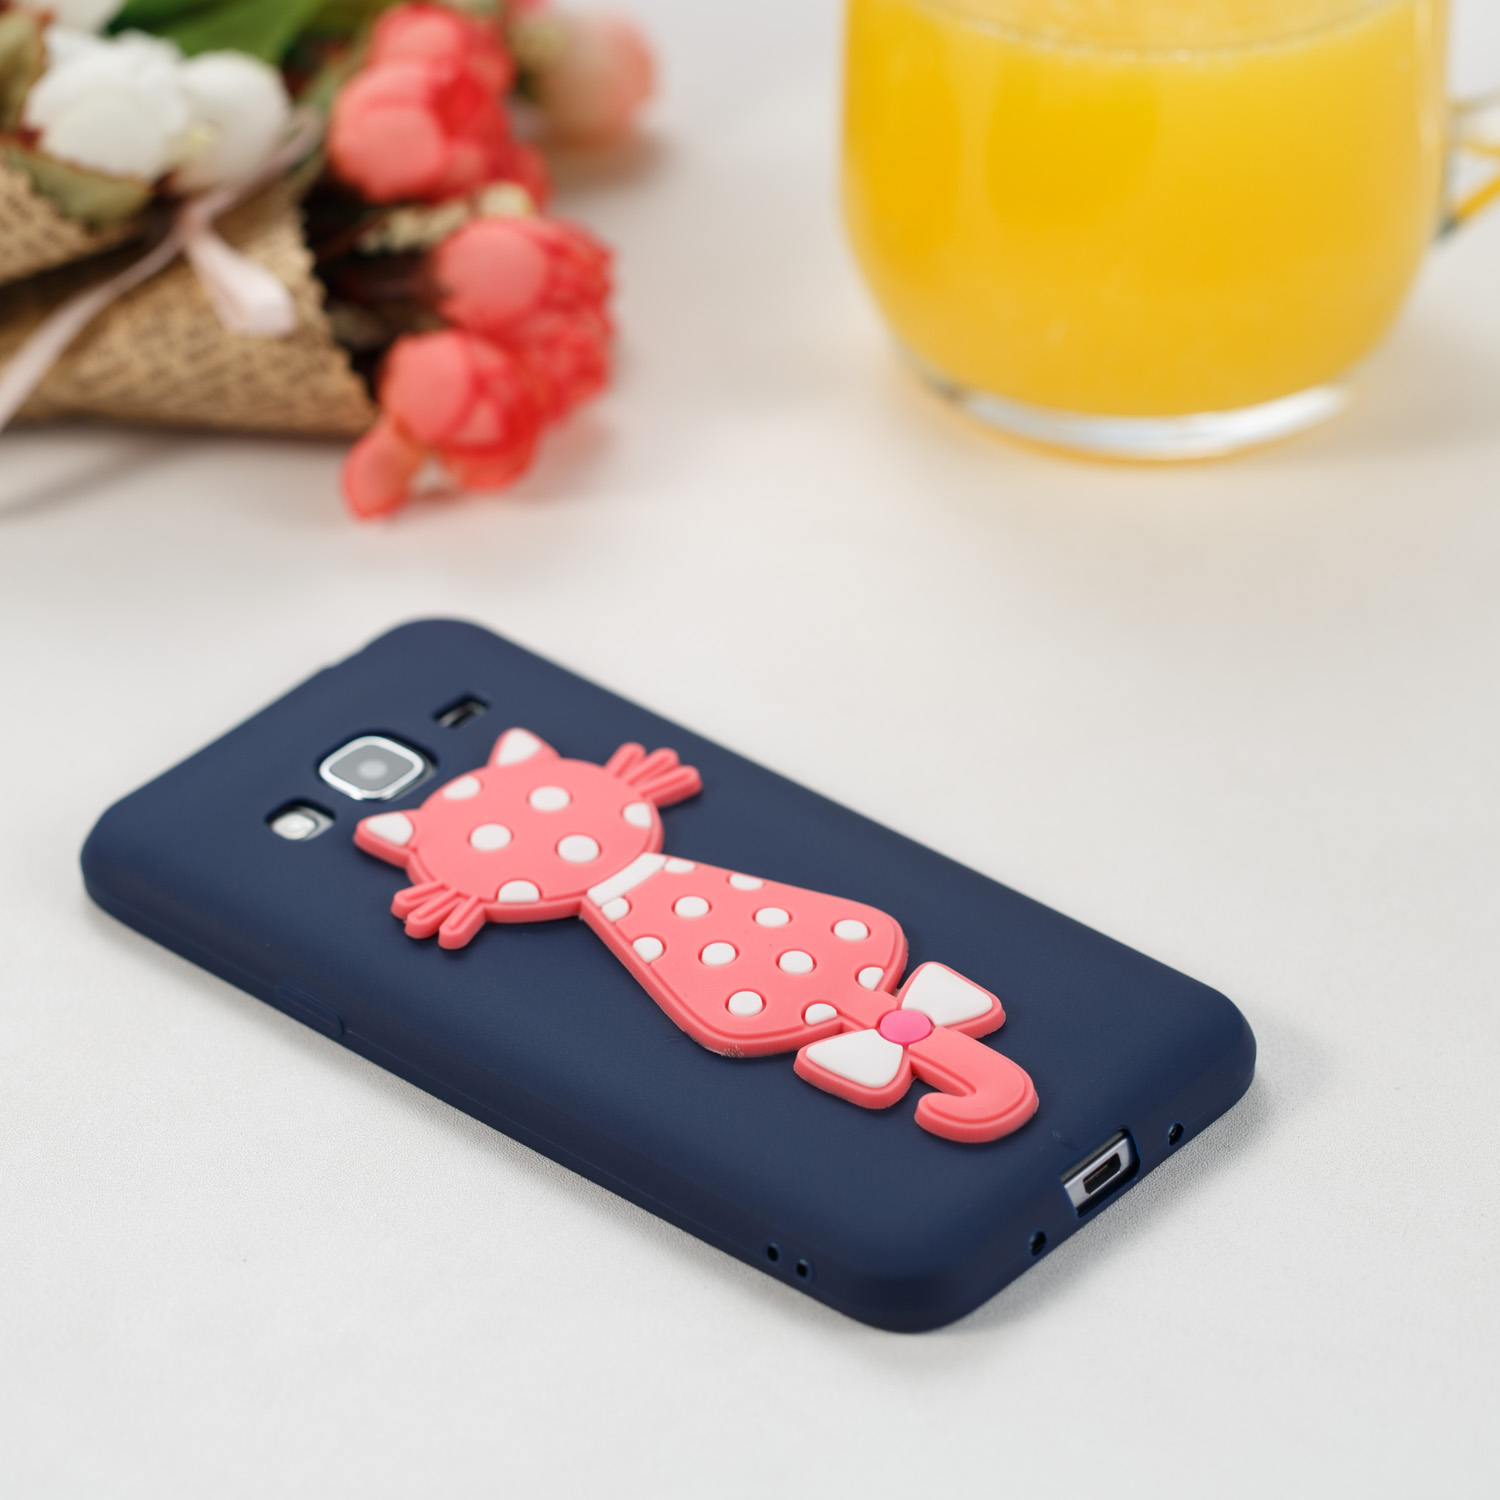 3D Cat Cartoon SiliconeCute TPU Bag Cubierta Cover Kryty Shell Phone Case For Samsung Sumsung Samsug Galaxy Galax J3 2016